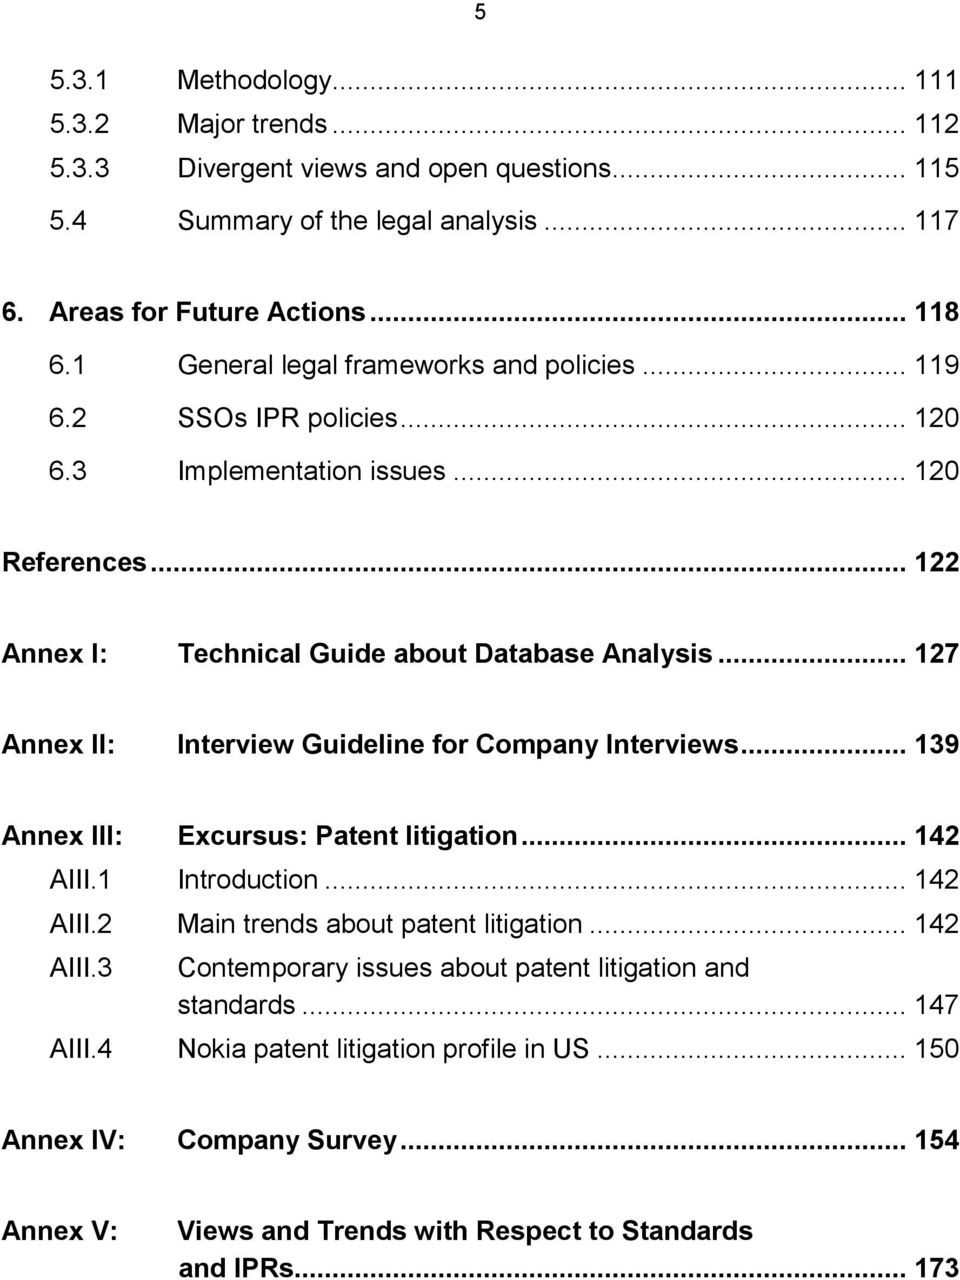 .. 127 Annex II: Interview Guideline for Company Interviews... 139 Annex III: Excursus: Patent litigation... 142 AIII.1 Introduction... 142 AIII.2 Main trends about patent litigation.